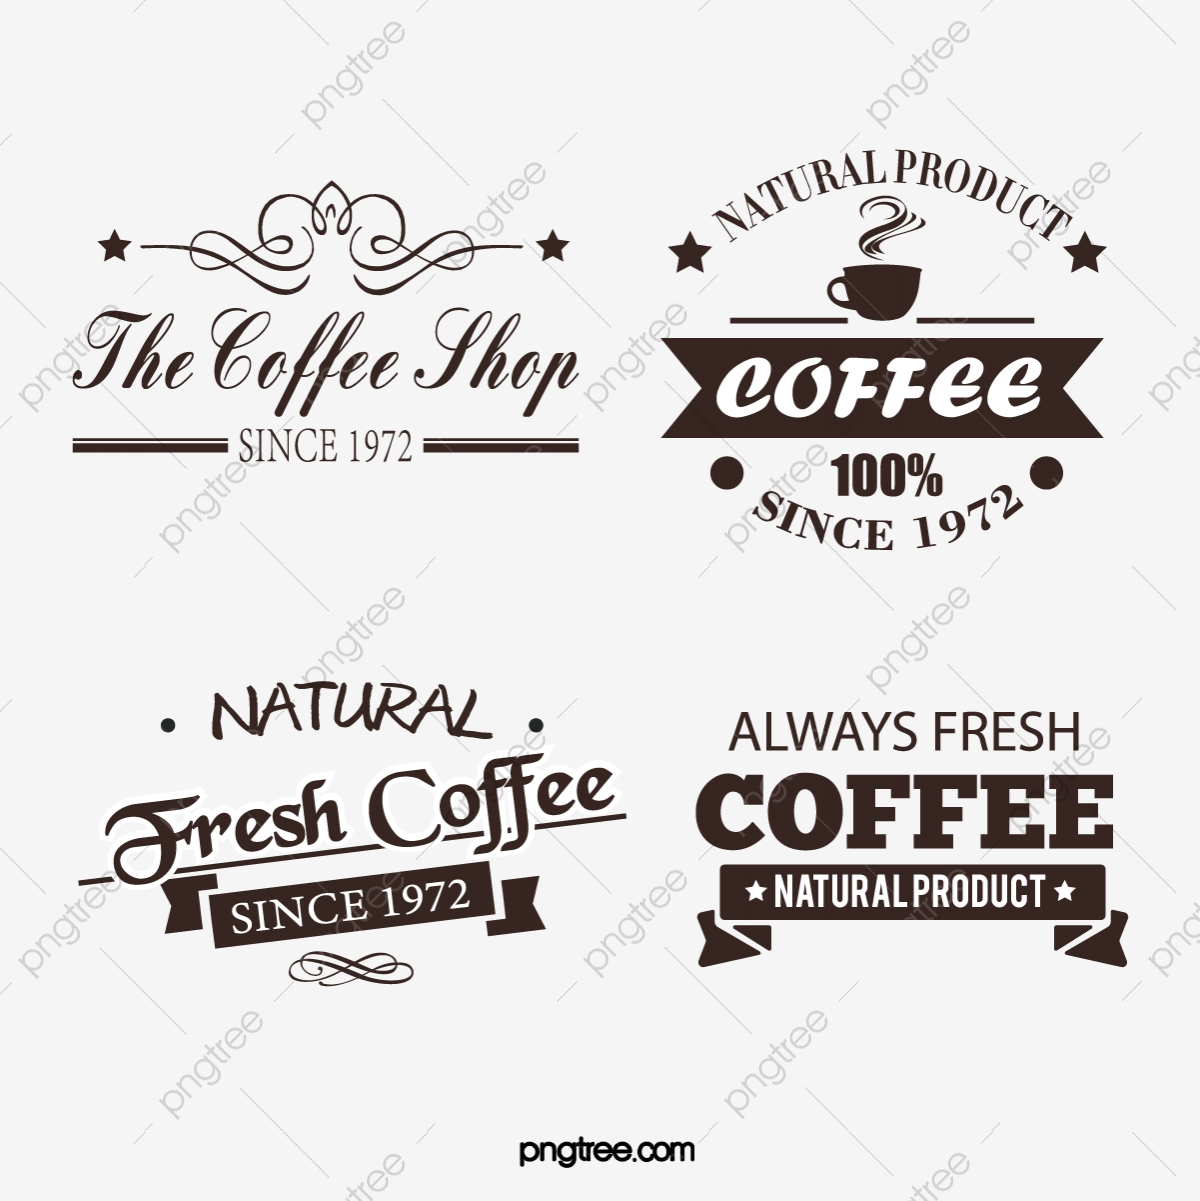 Vintage Flower Body Creative Fashion Coffee Shop Creative Art Word Logo Design Vintage Flower Body Creative Png And Vector With Transparent Background For Free Download